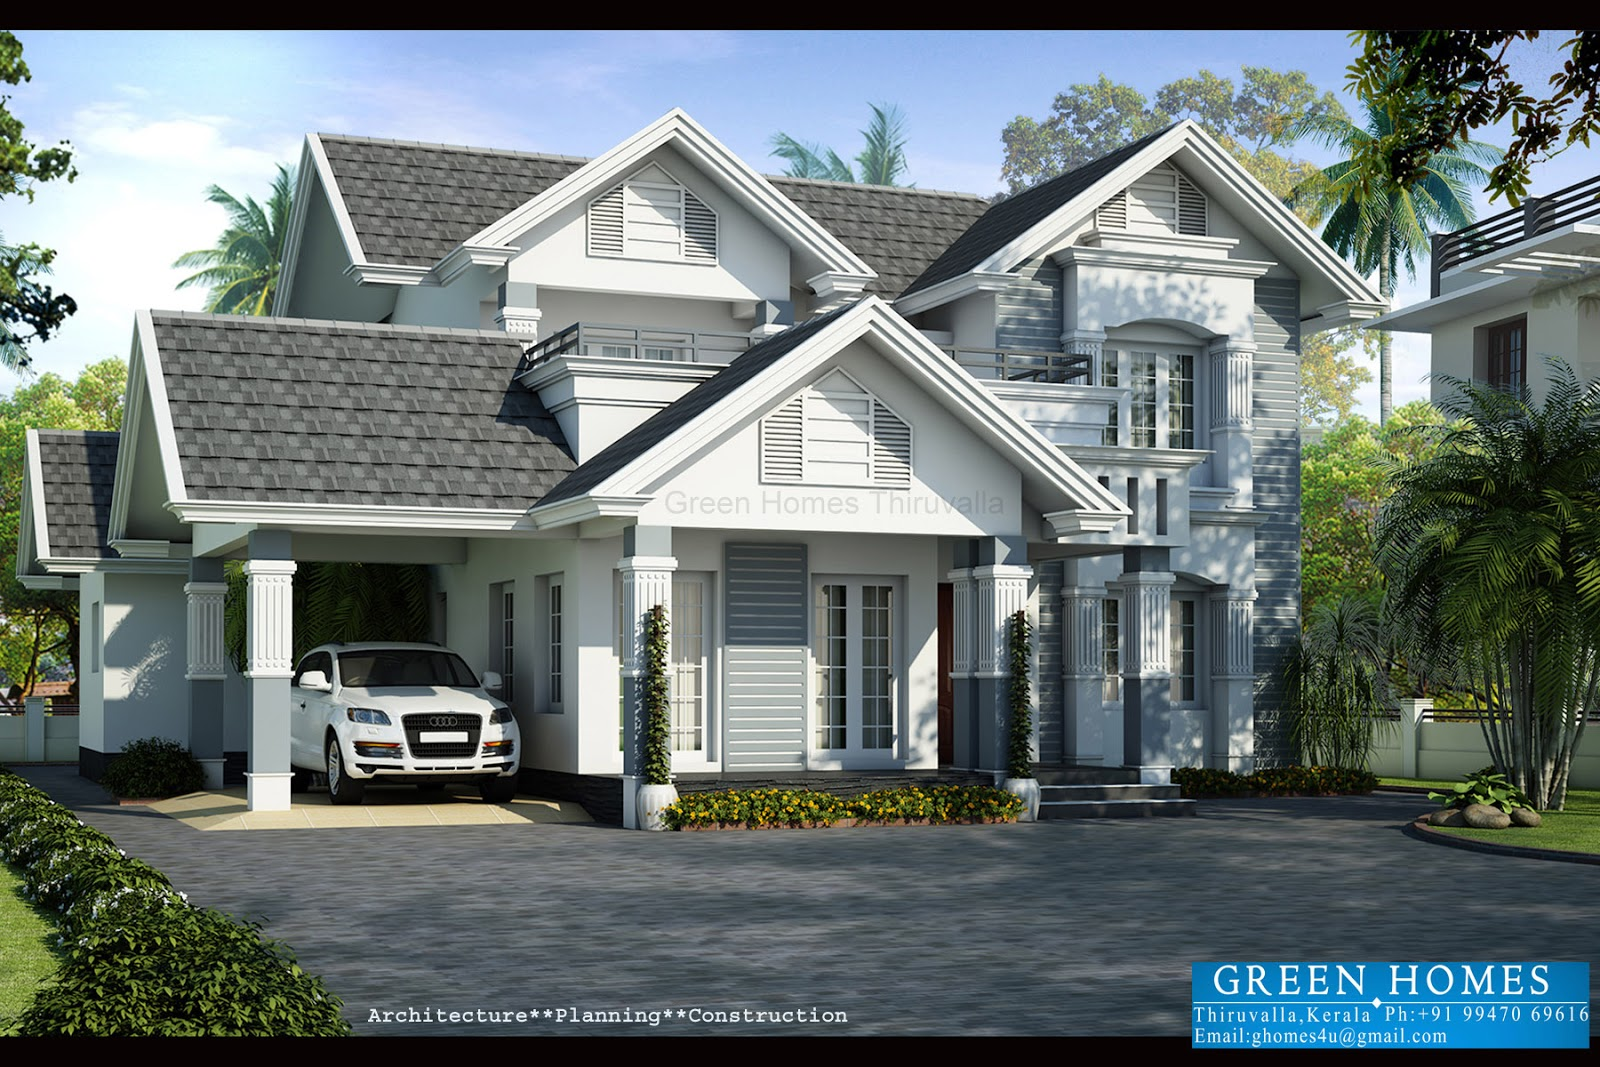 Green homes august 2013 Home plan photos